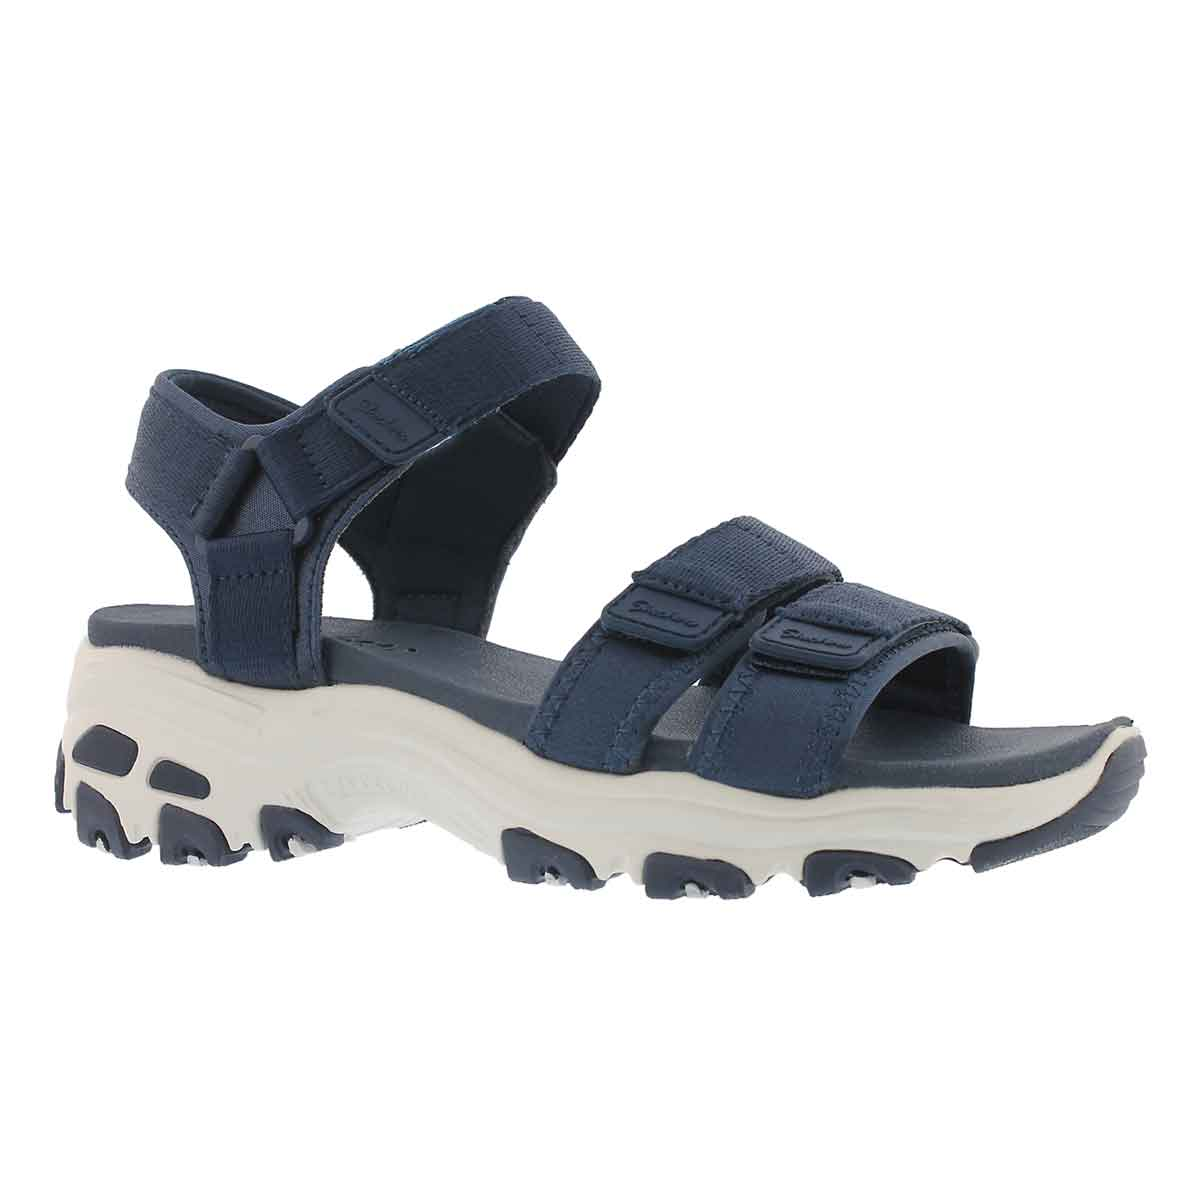 Women's D'LITES FRESH CATCH navy sport sandals